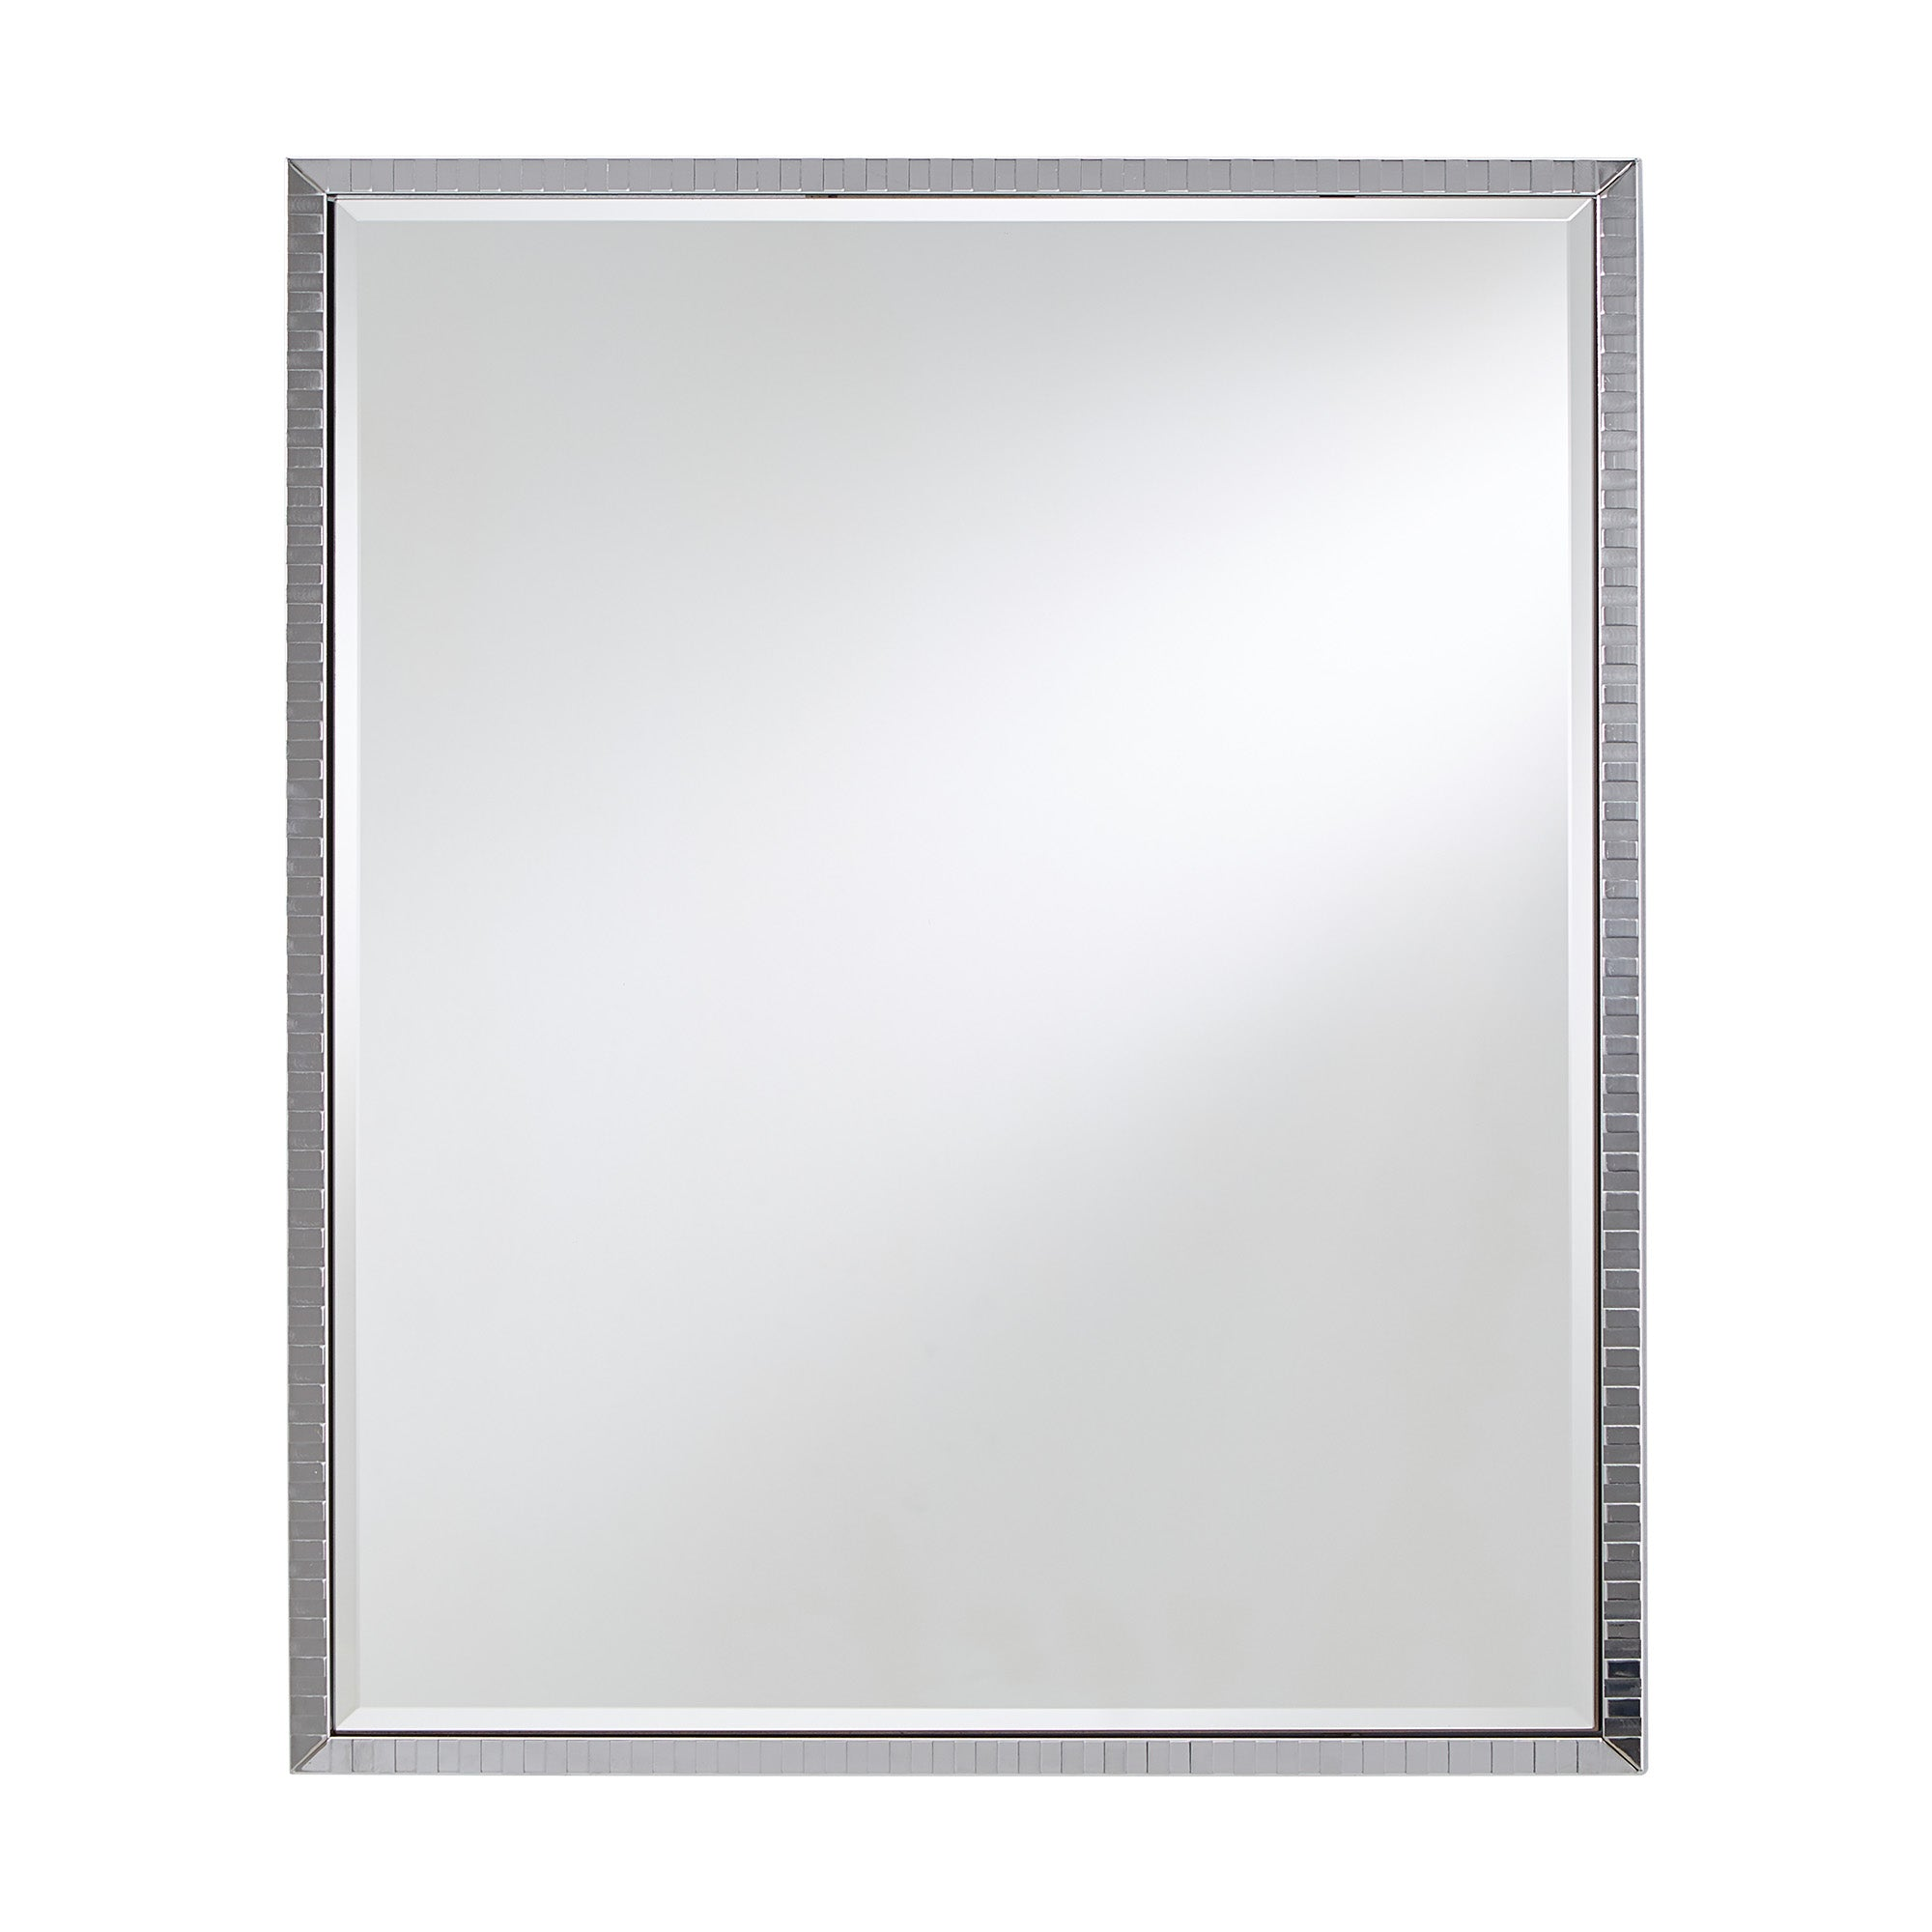 Chrome Checkered Pattern Metal Rectangular Wall Mirror